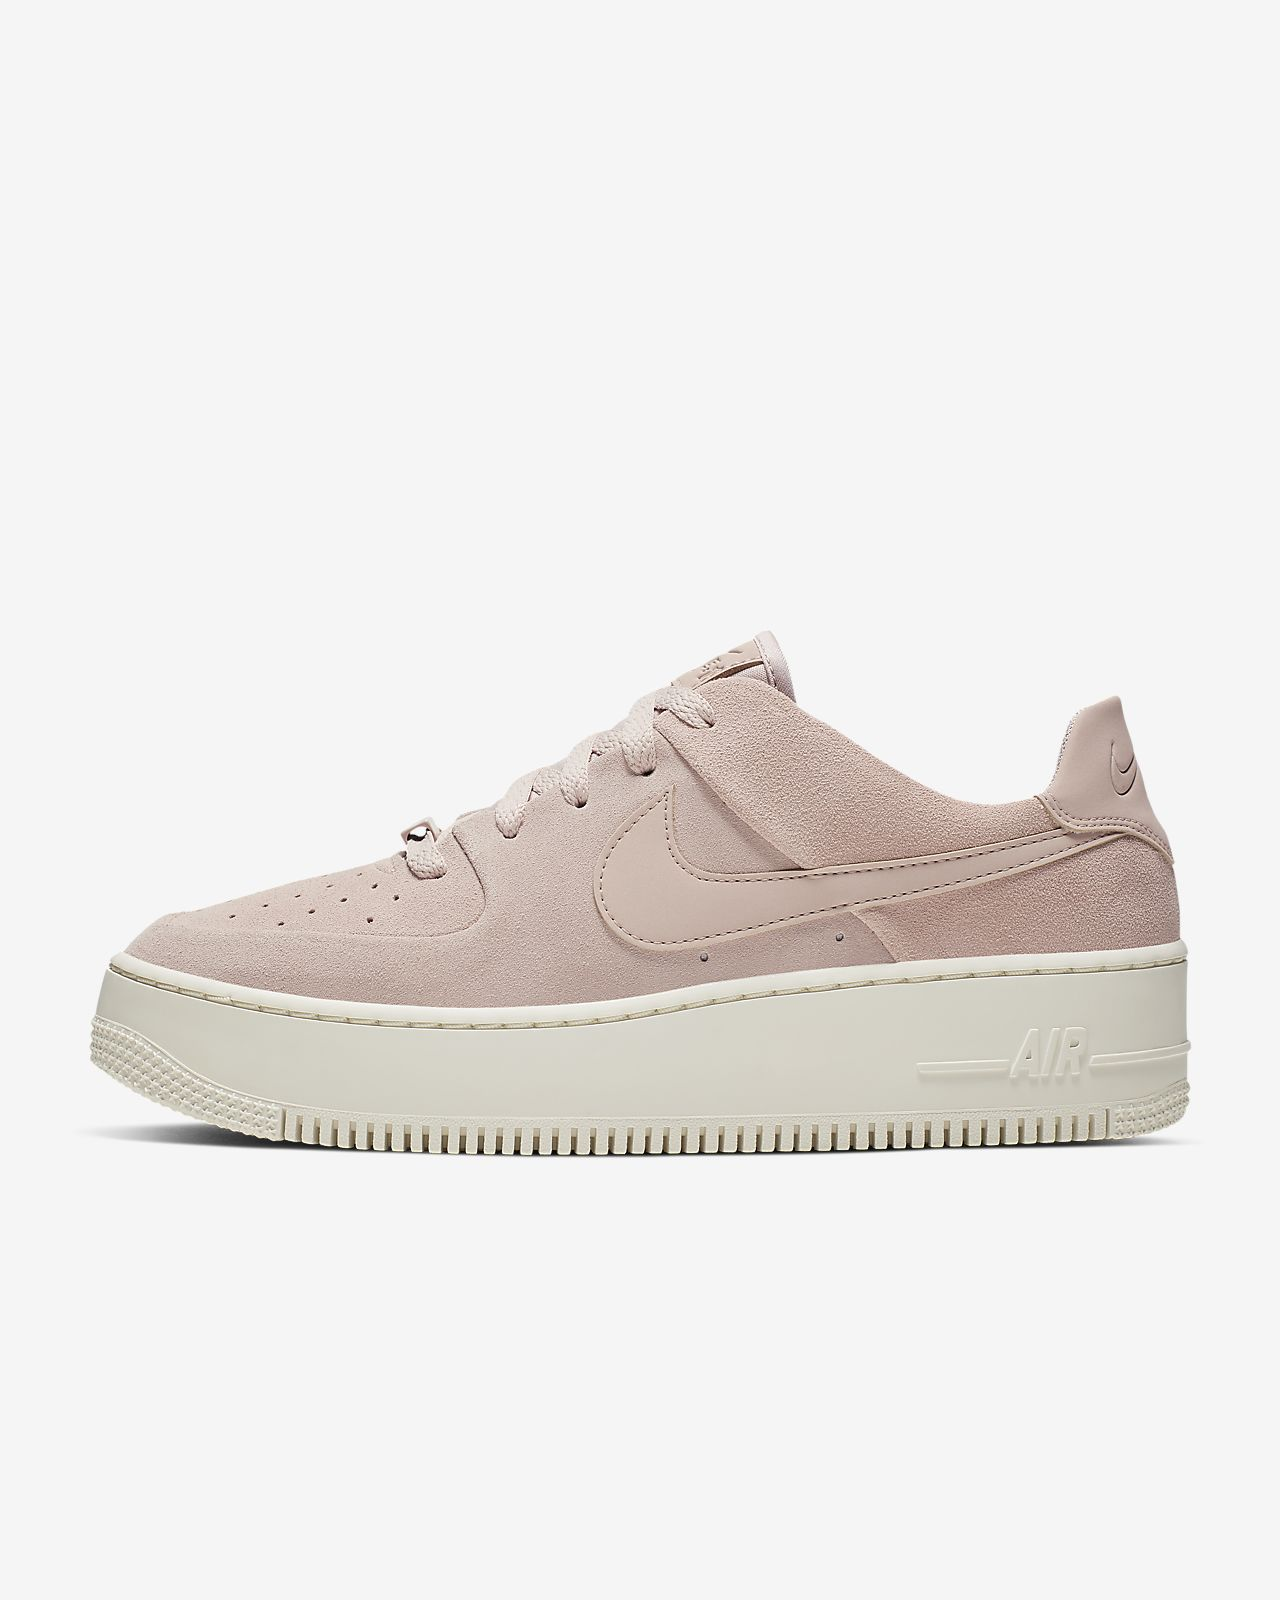 quality design 09992 4f8bb ... Nike Air Force 1 Sage Low Womens Shoe